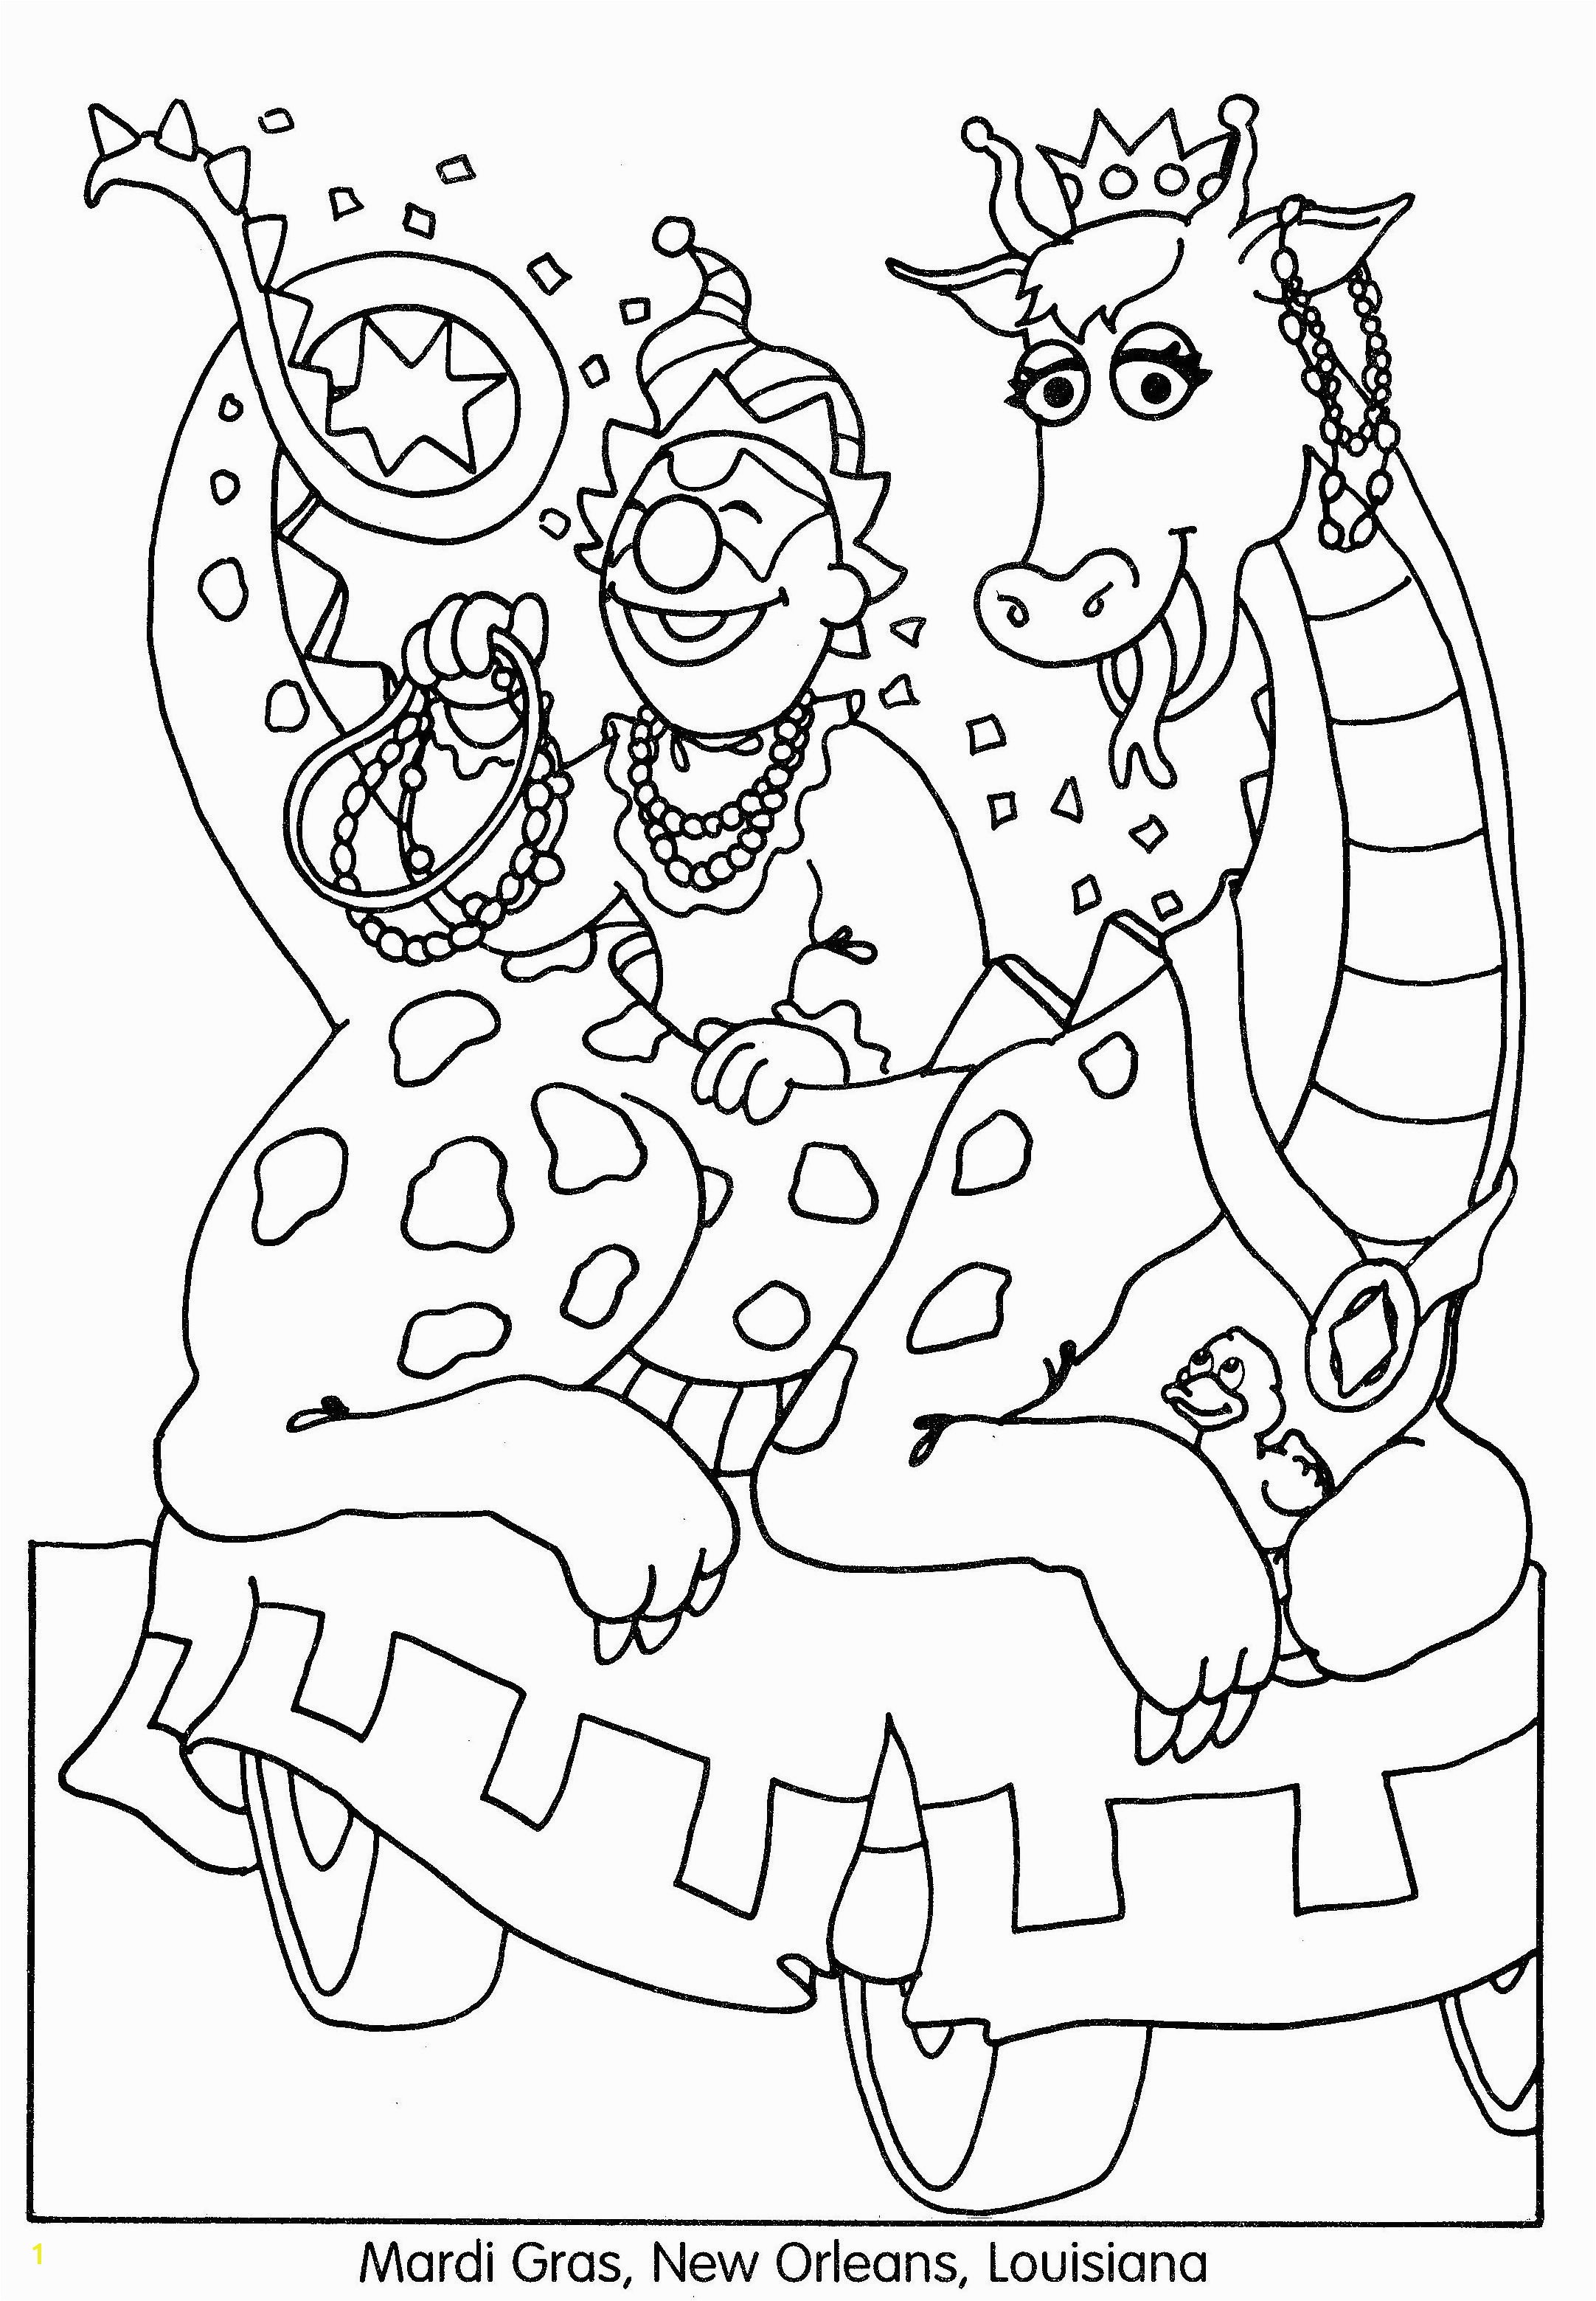 Mardi Gras Color Pages Printable Unique Mardi Gras Coloring Pages Coloring Pages